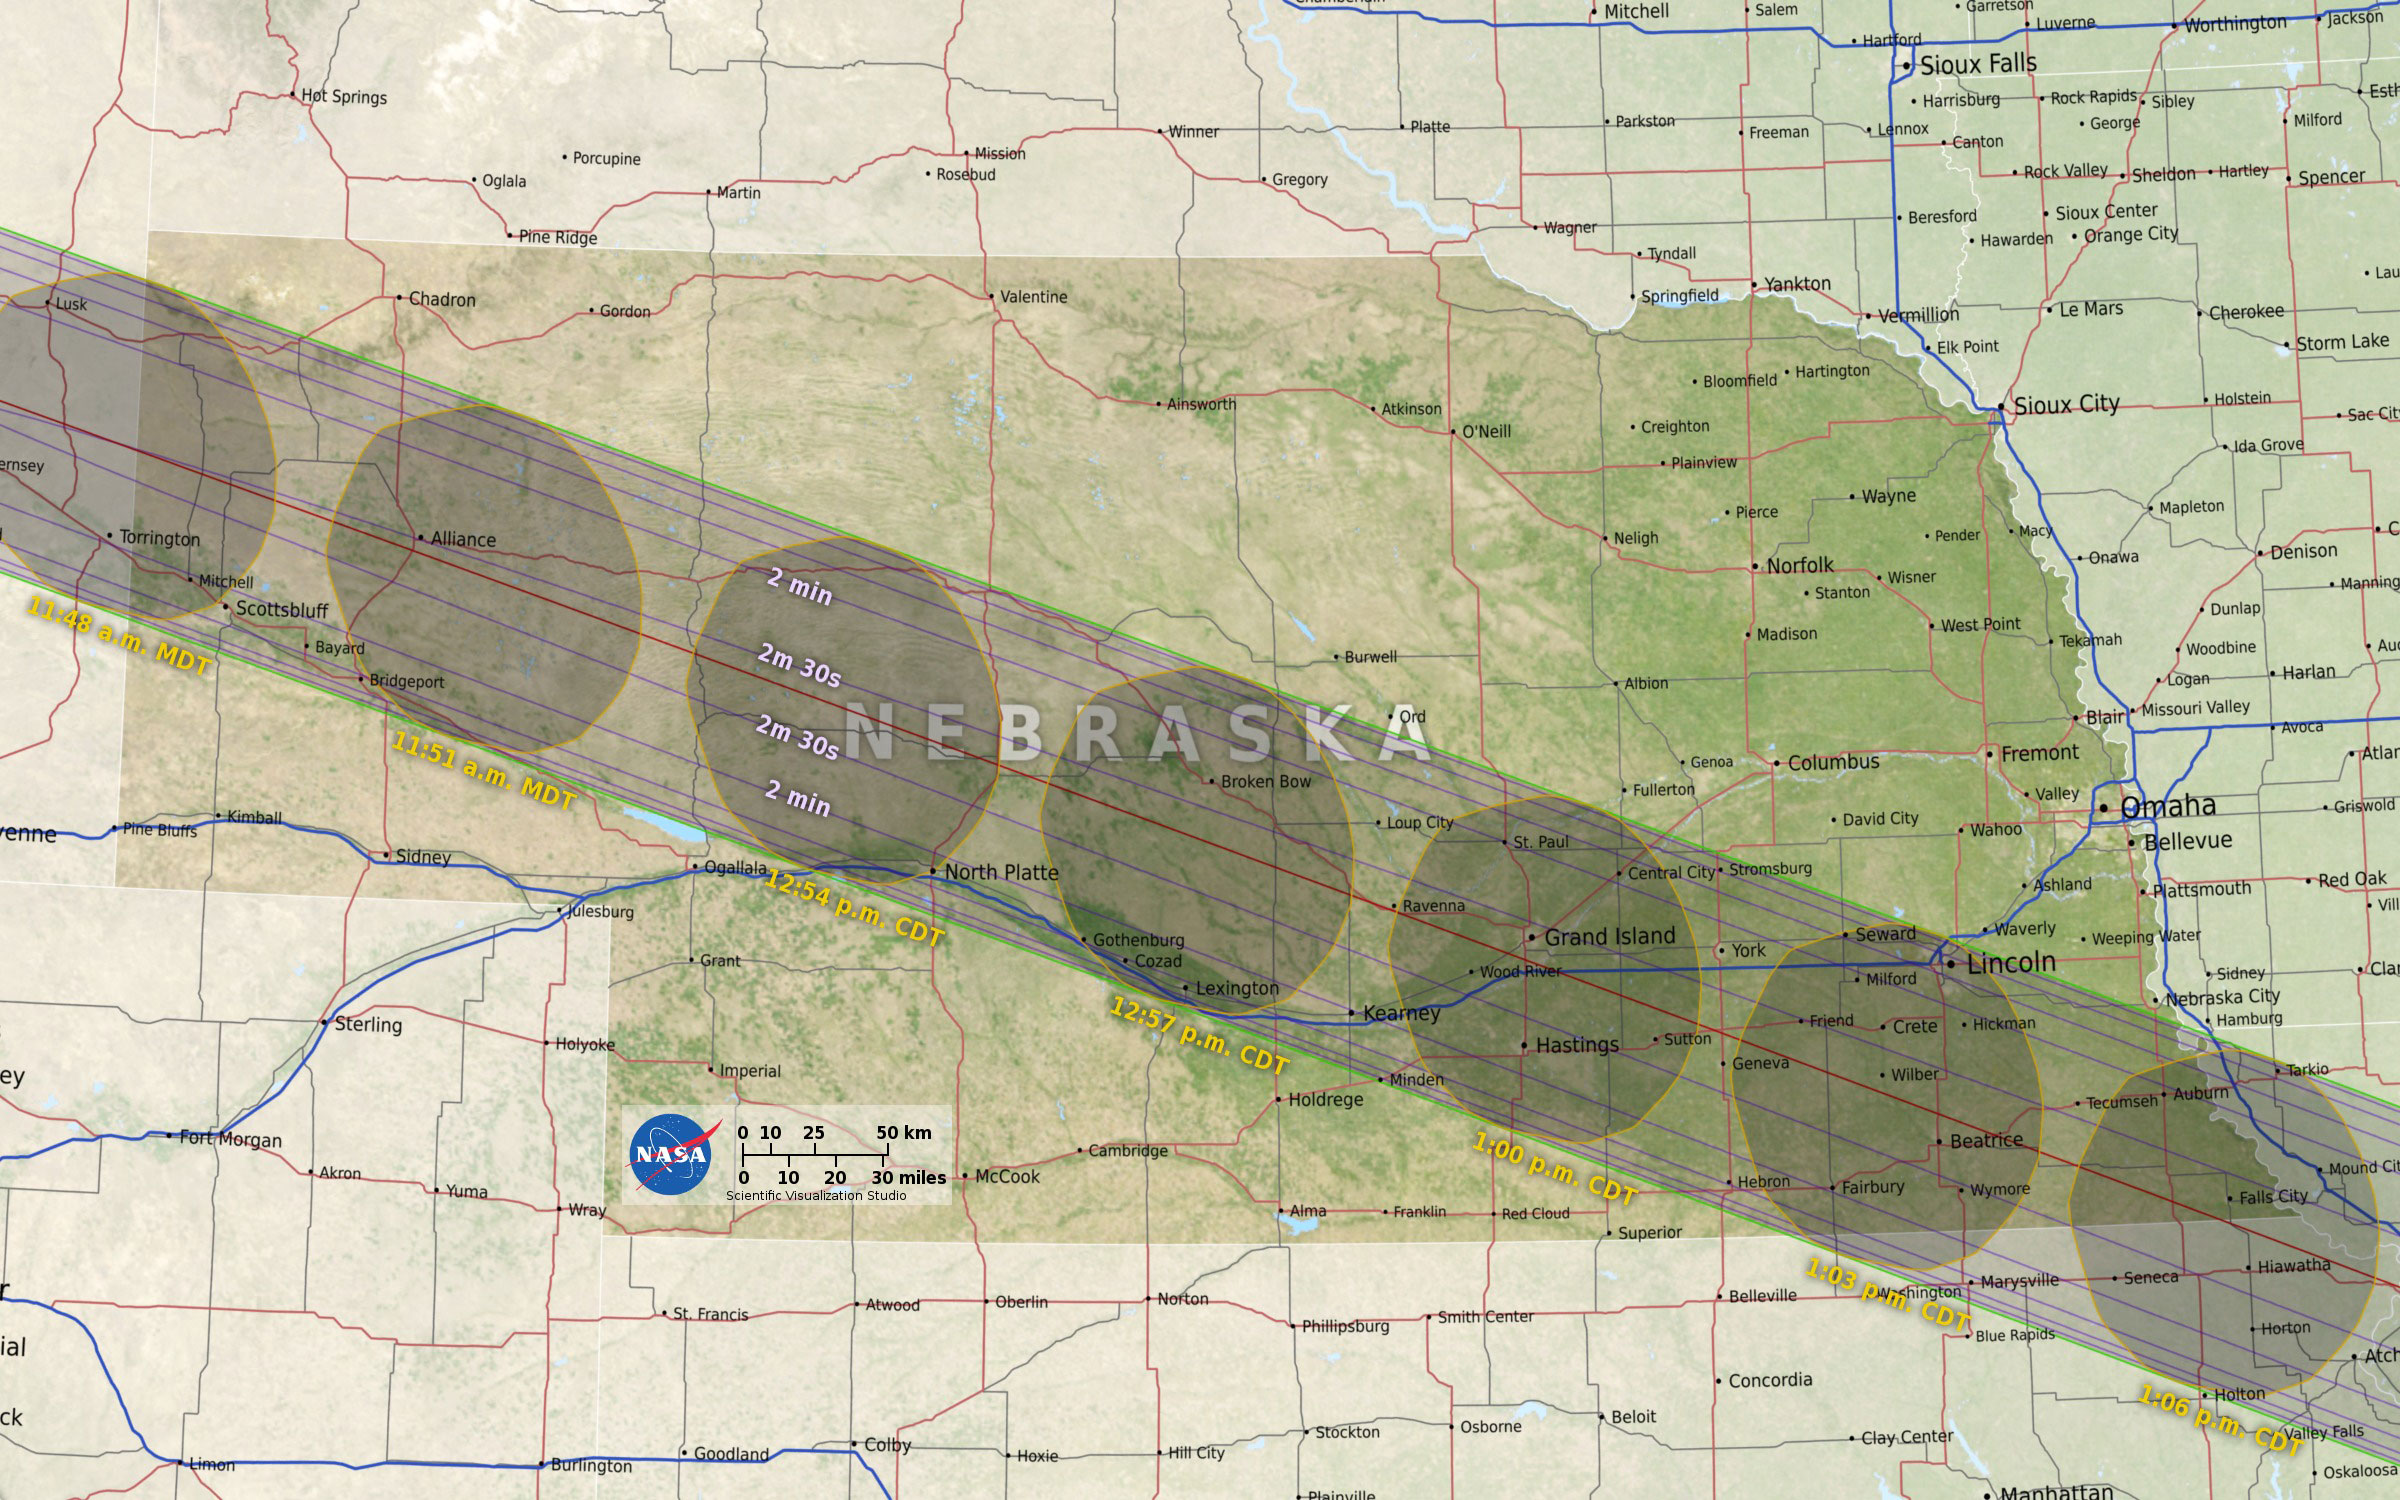 Map courtesy of nasa / eclipse2017.nasa.gov